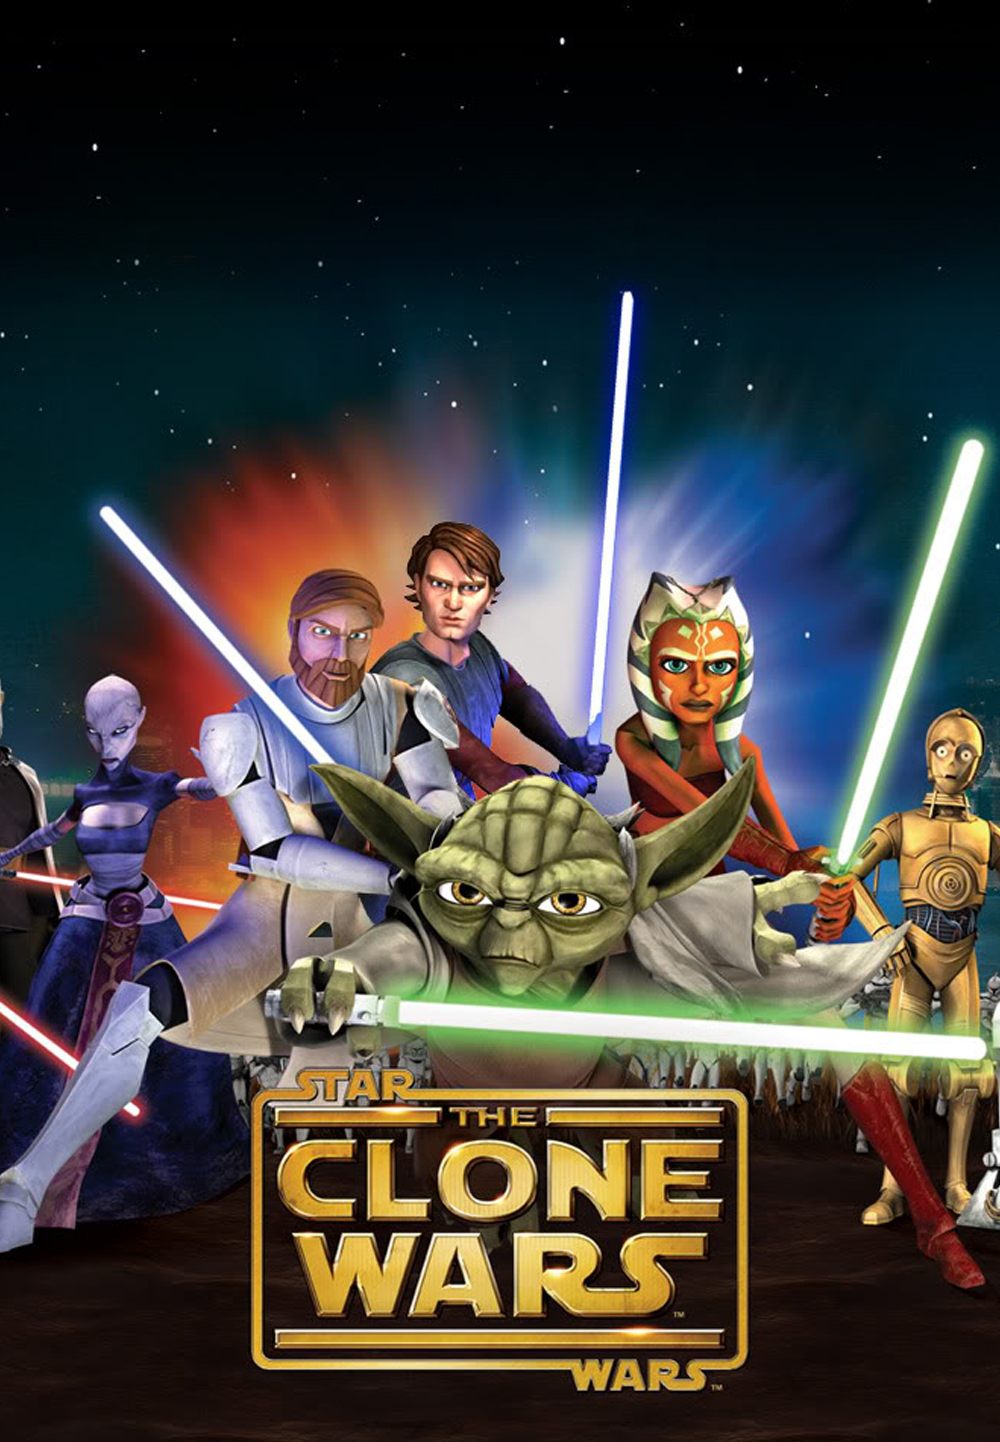 Star Wars - The Clone Wars (Serie)